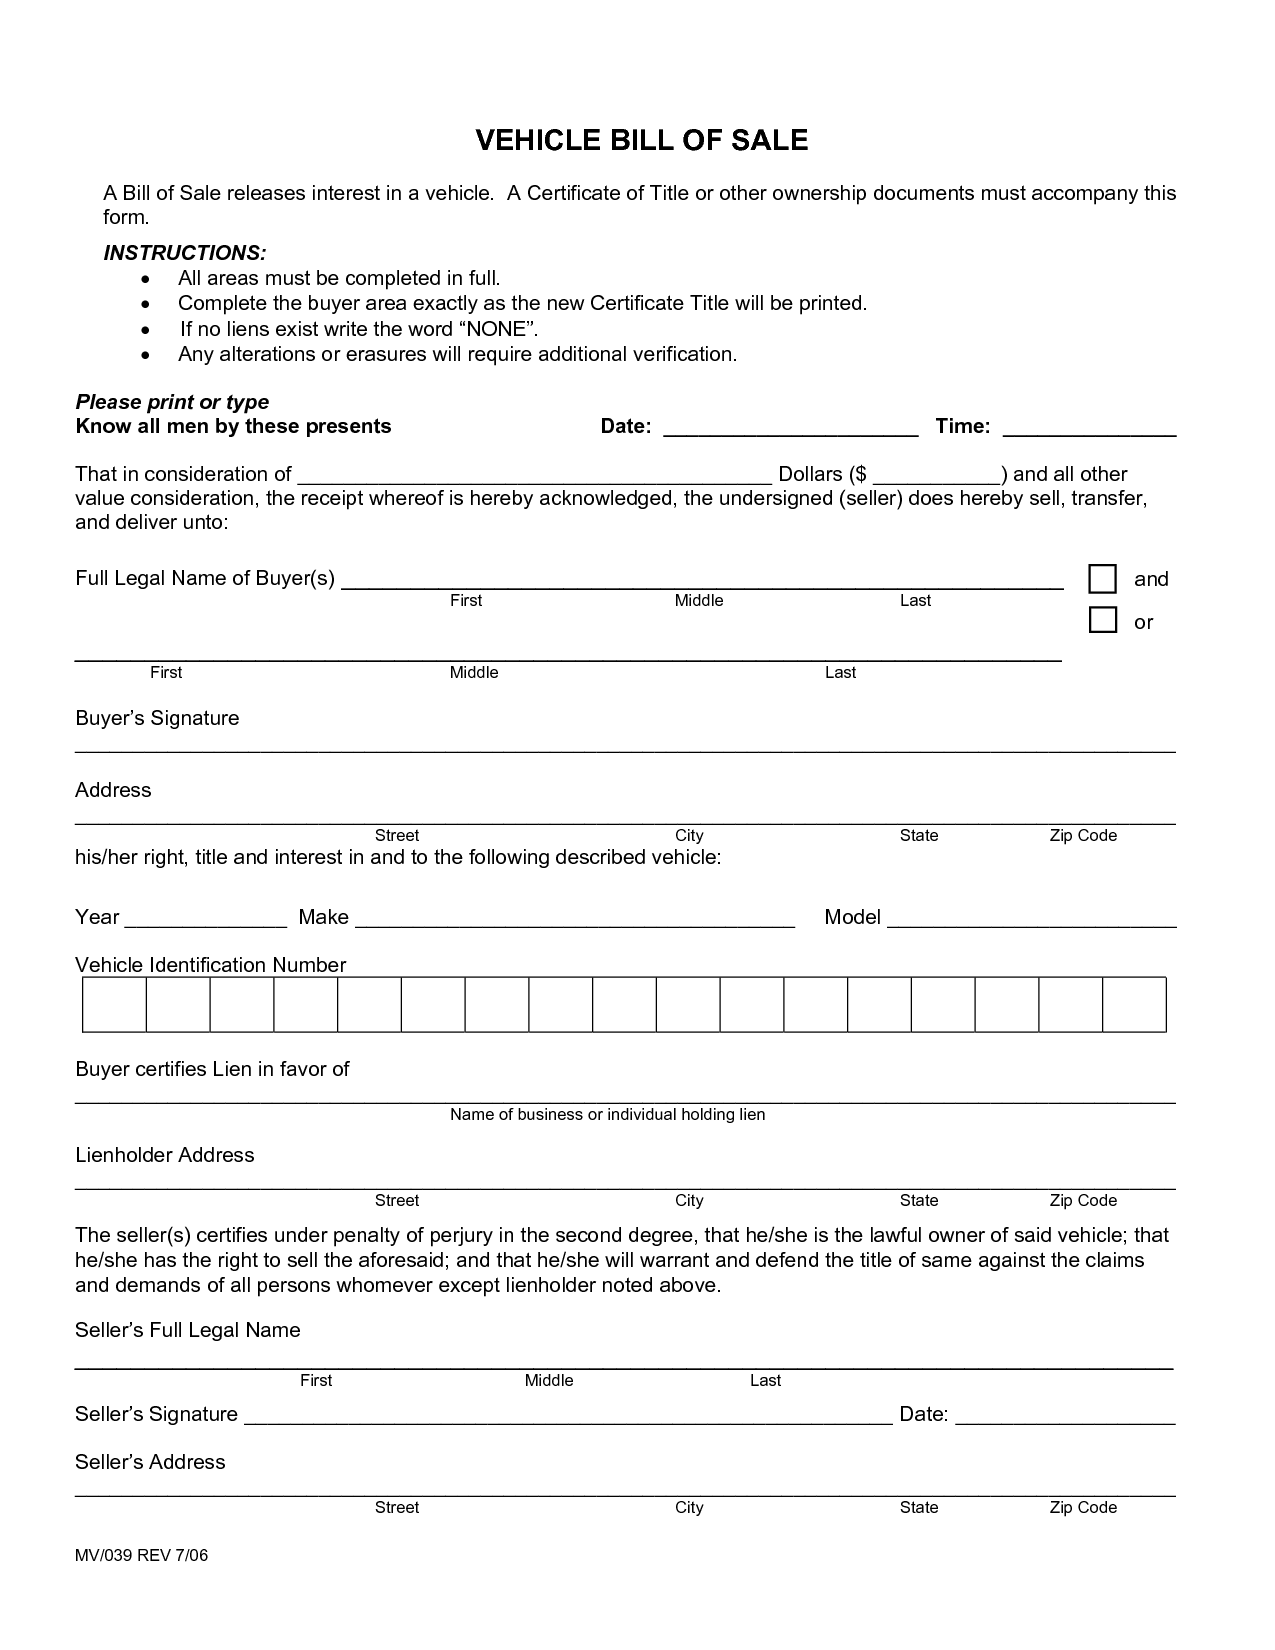 Fan image with regard to bill of sale form printable